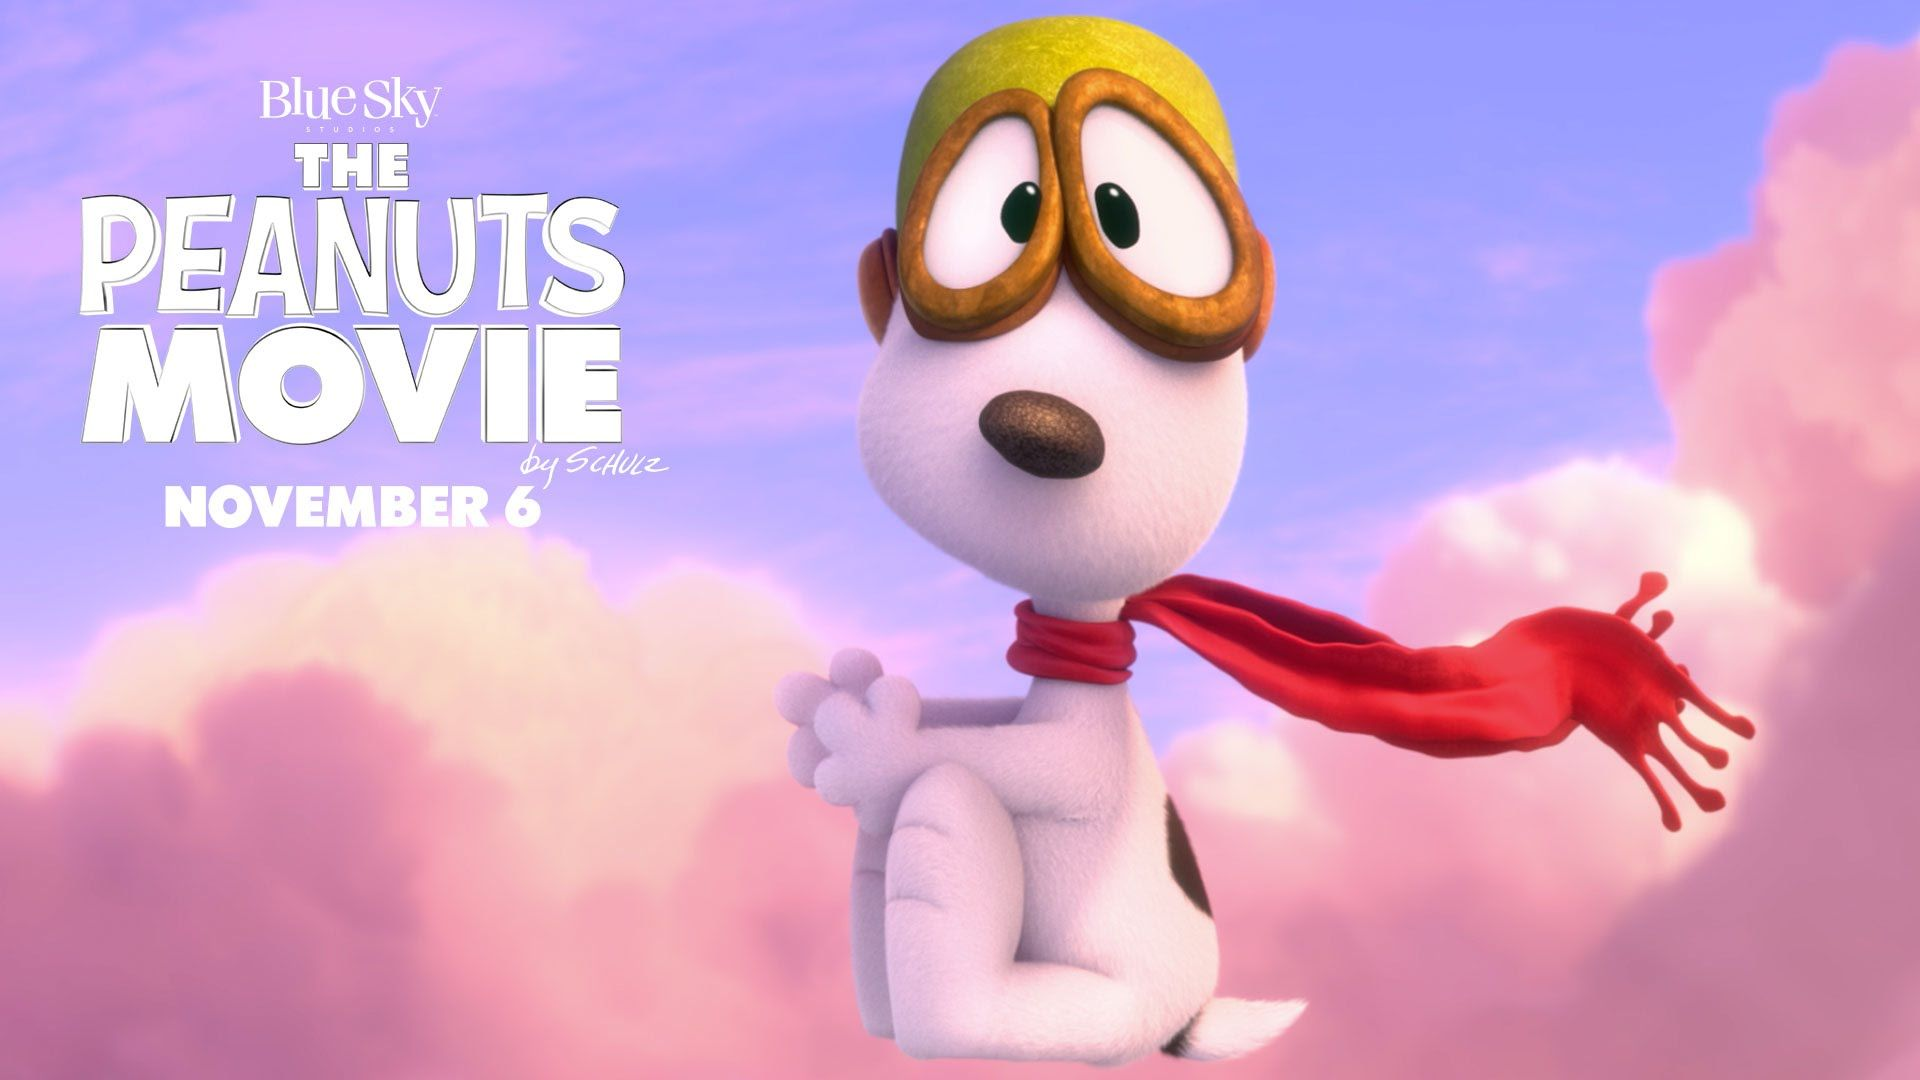 The Peanuts Movie The Red Baron Hd 20th Century Fox Movies